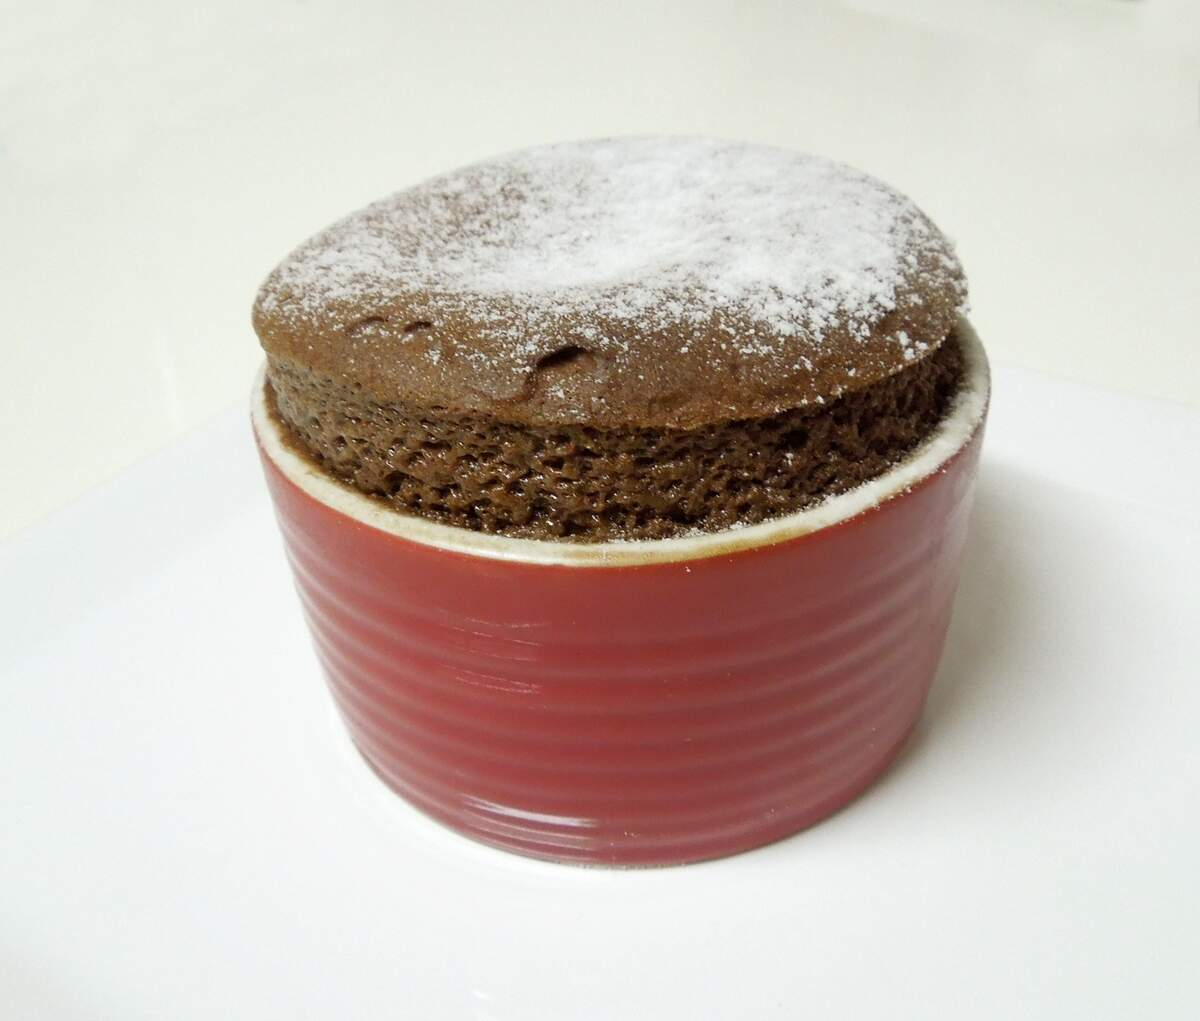 Image for National Chocolate Soufflé Day